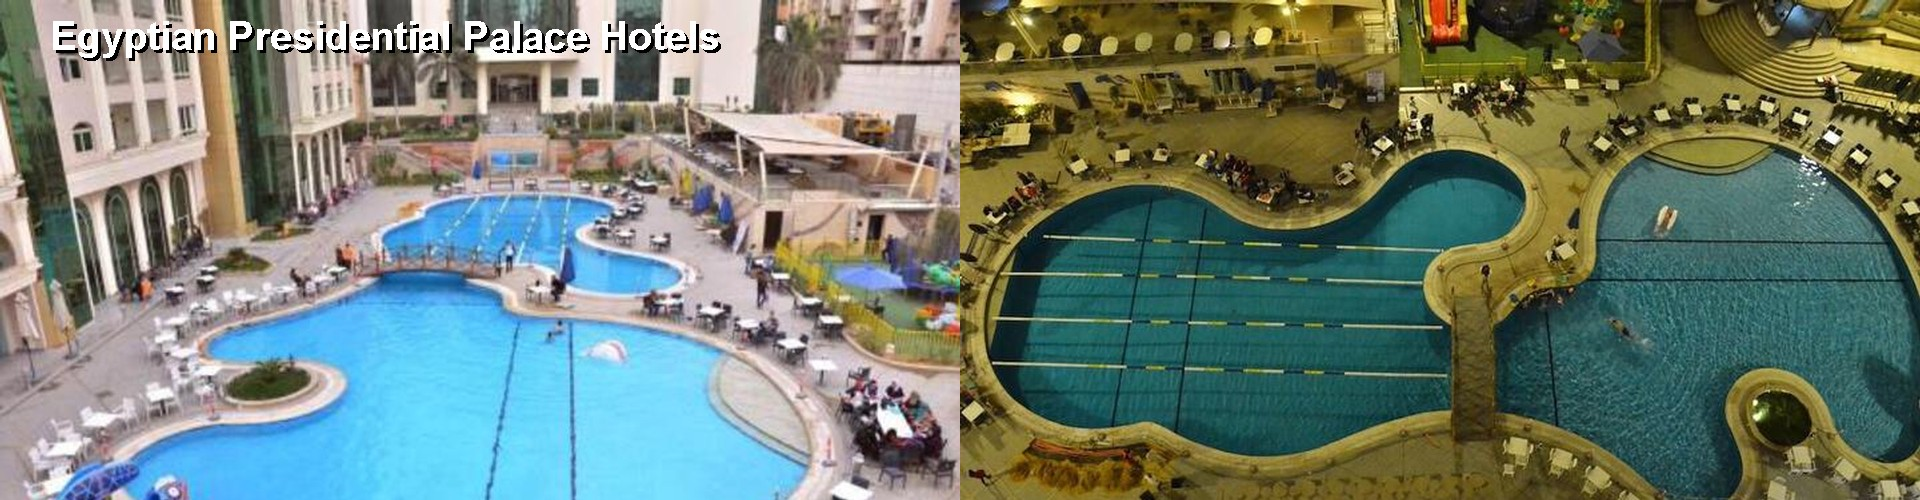 5 Best Hotels near Egyptian Presidential Palace